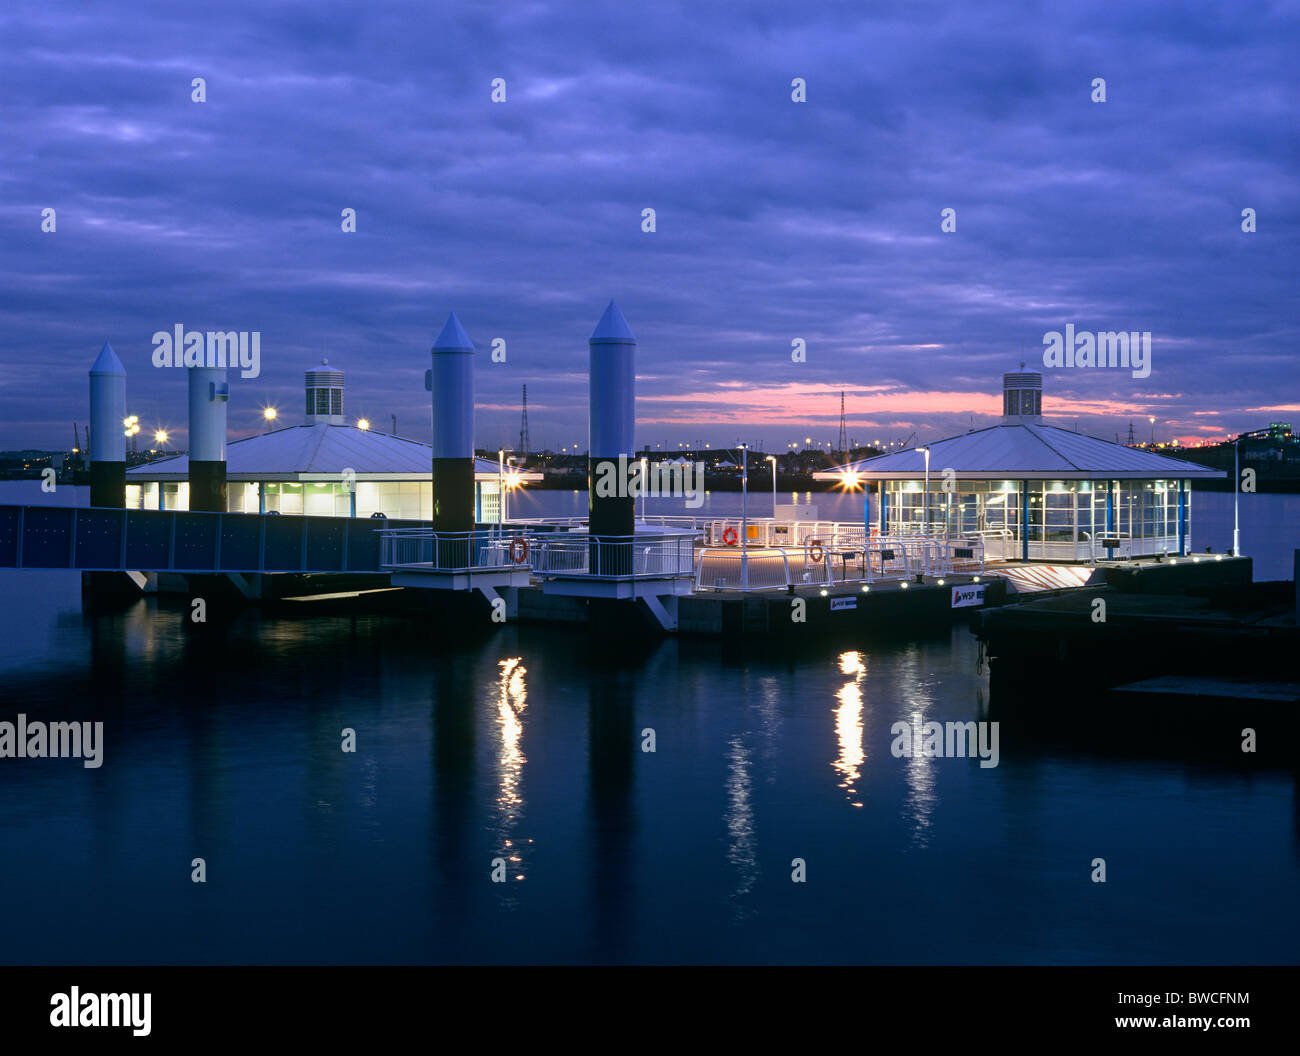 Shields Ferry, South Shields at dusk - Stock Image